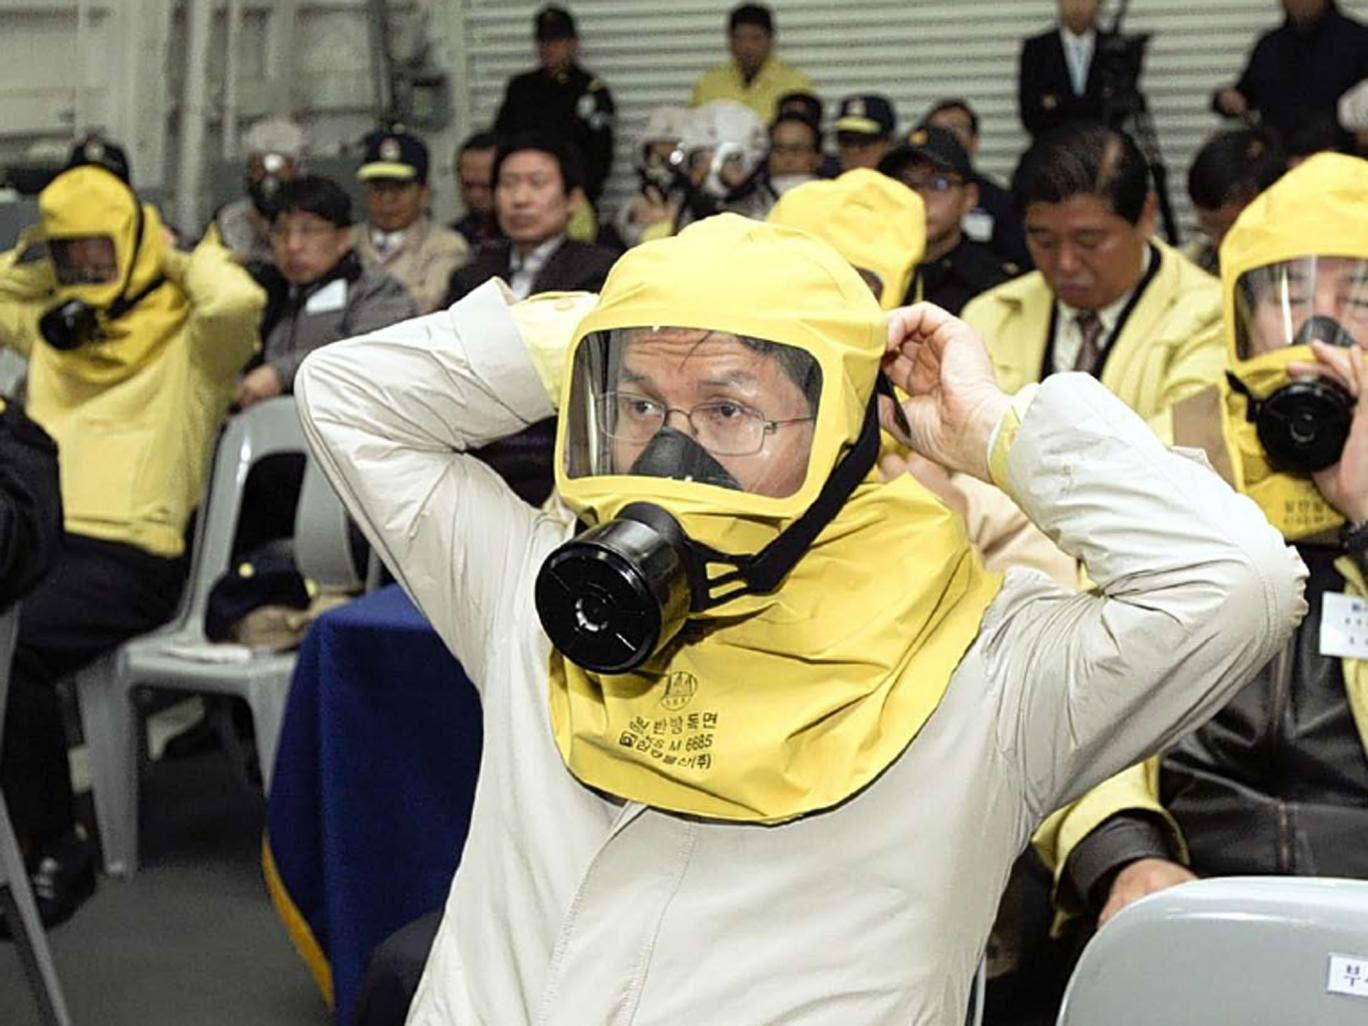 A civil defence drill at a navy base in Pyeongtaek, south of Seoul, yesterday. Around 500 South Koreans are still at the Kaesong industrial complex